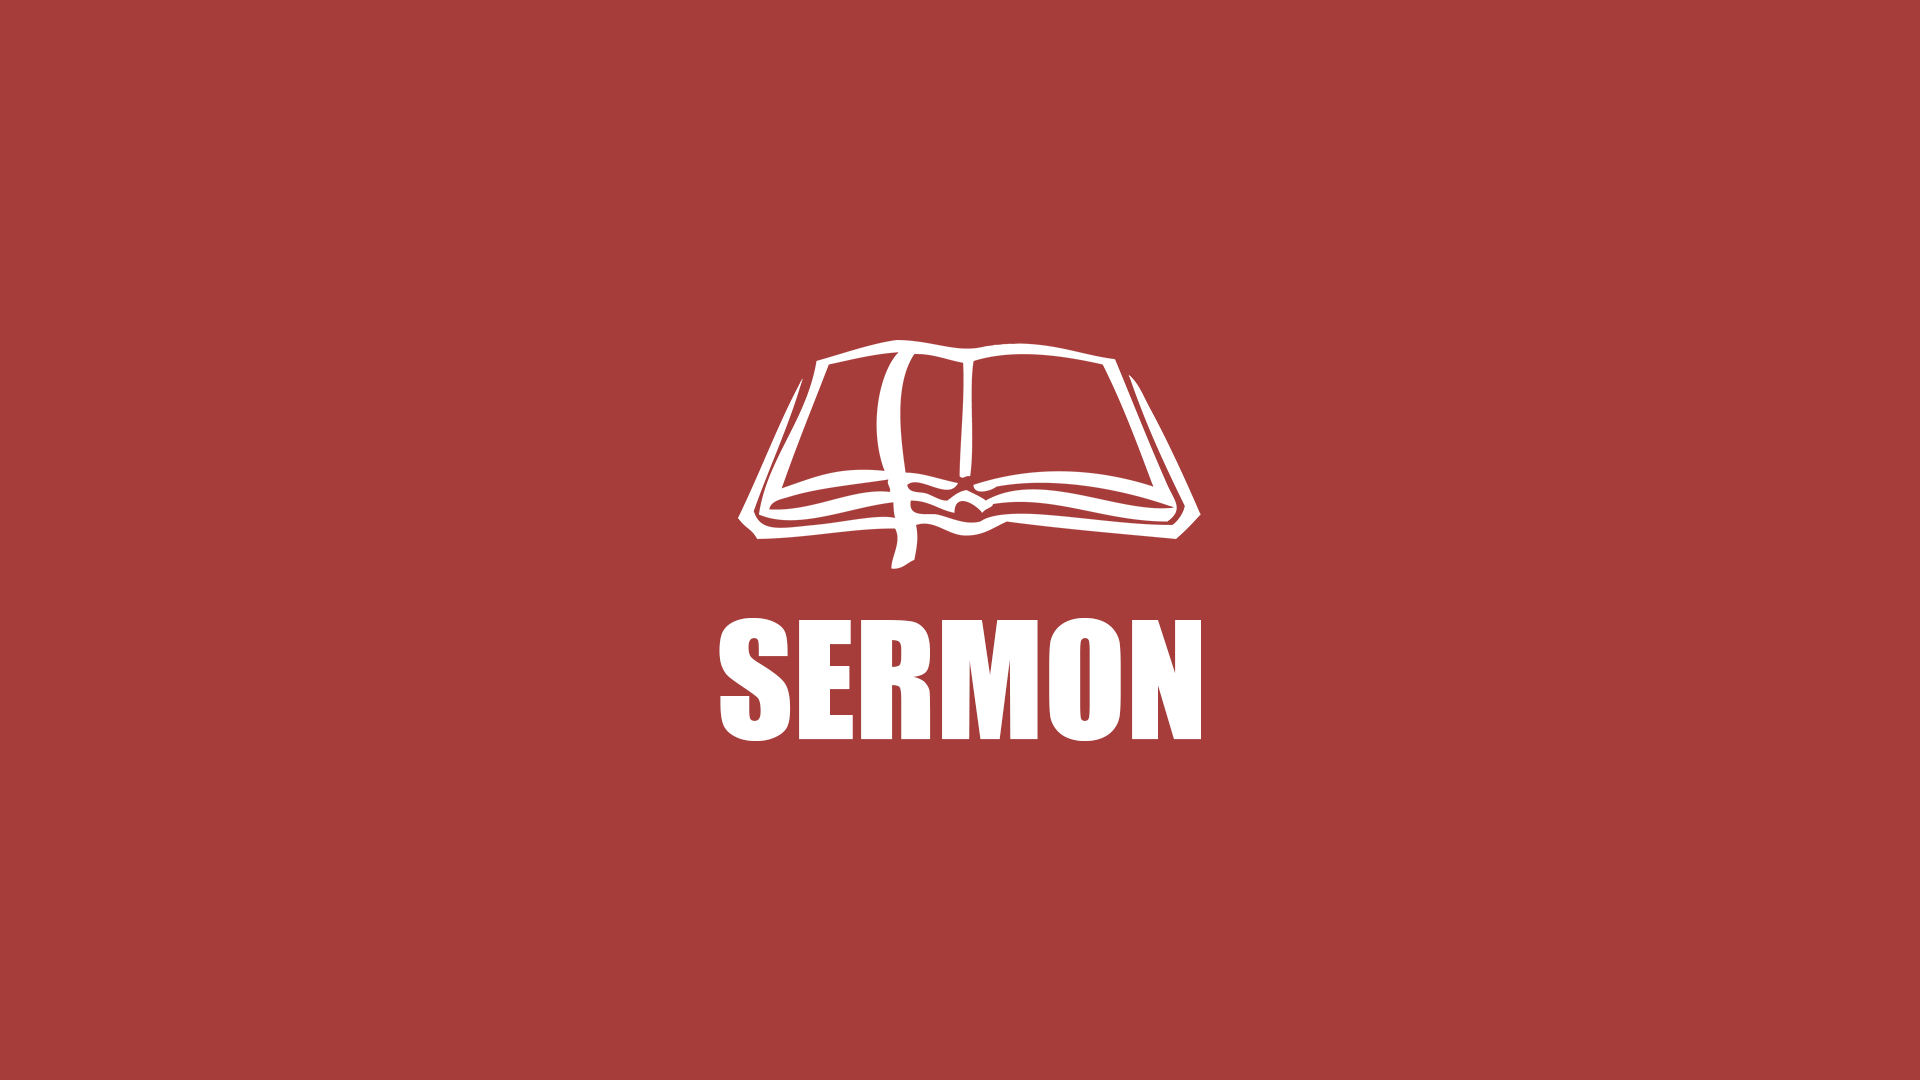 Malayalam Sermon Archives - Kerala Pentecostal Church